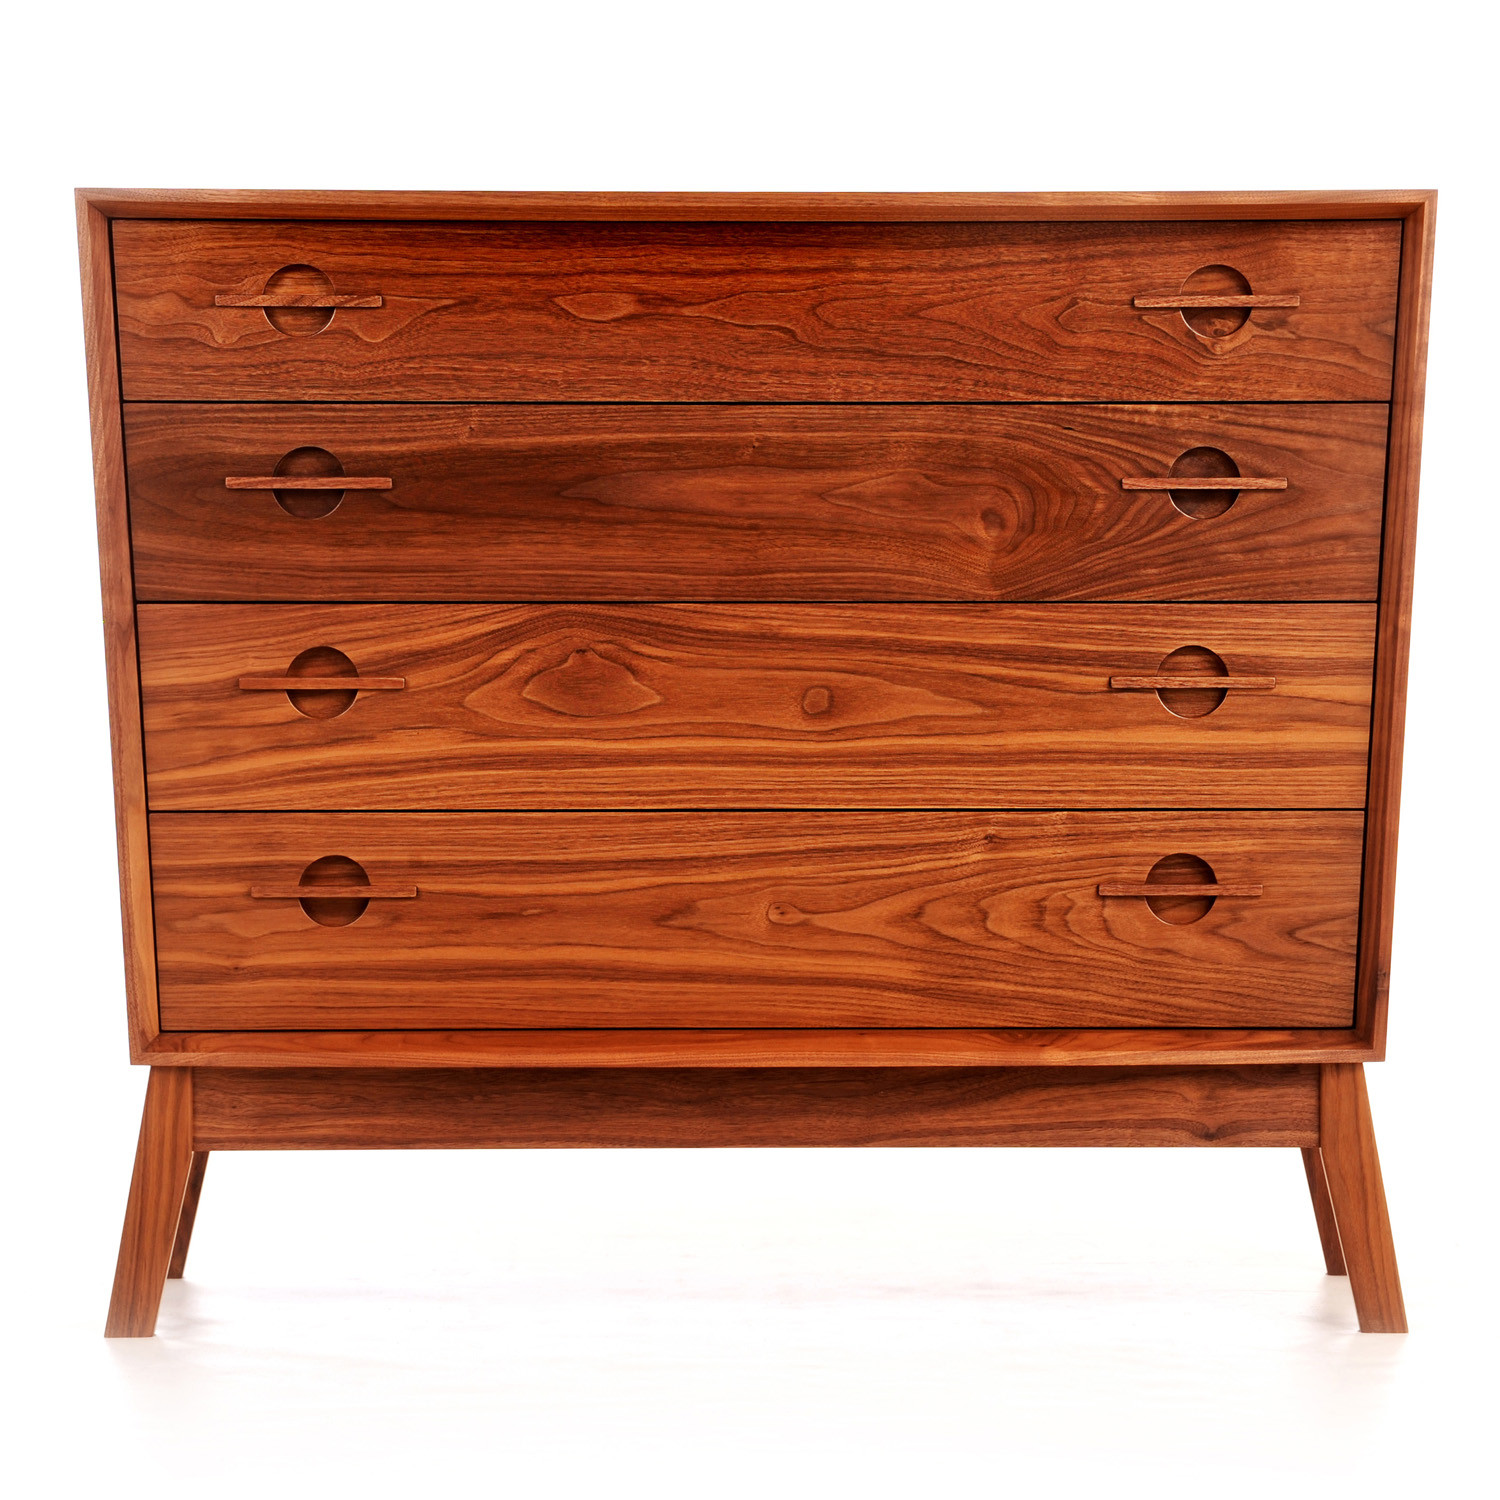 Acorn Wooden Chest of Drawers